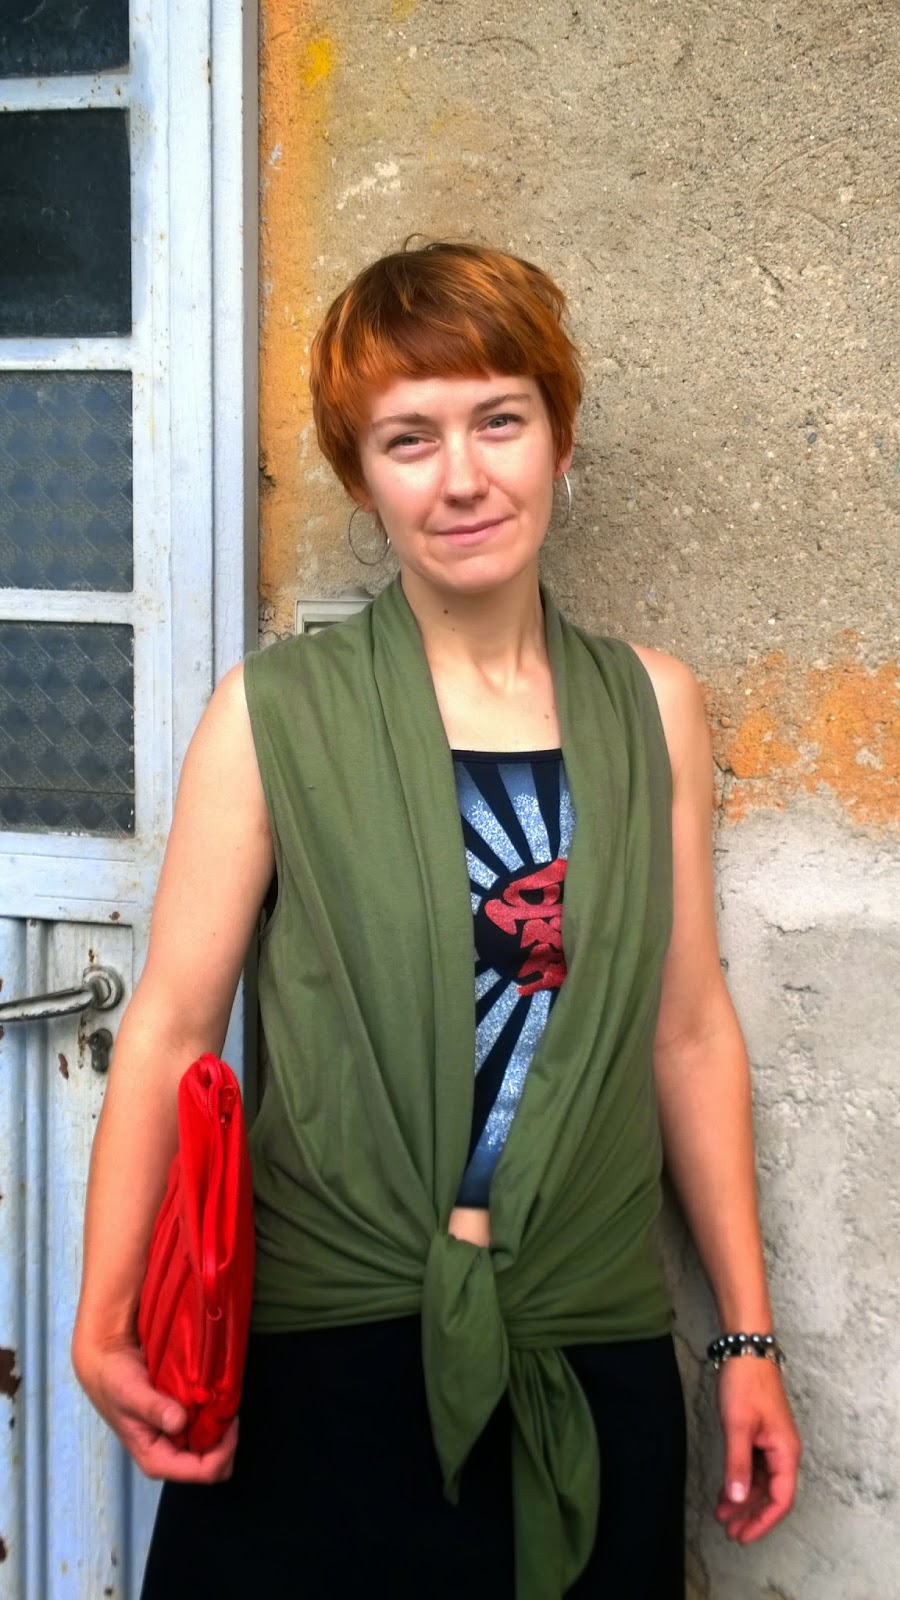 Casual, funky outfit - Sleeveless vest knotted at front, crop top with print, red bag || Funky Jungle - mindful fashion & quirky personal style blog